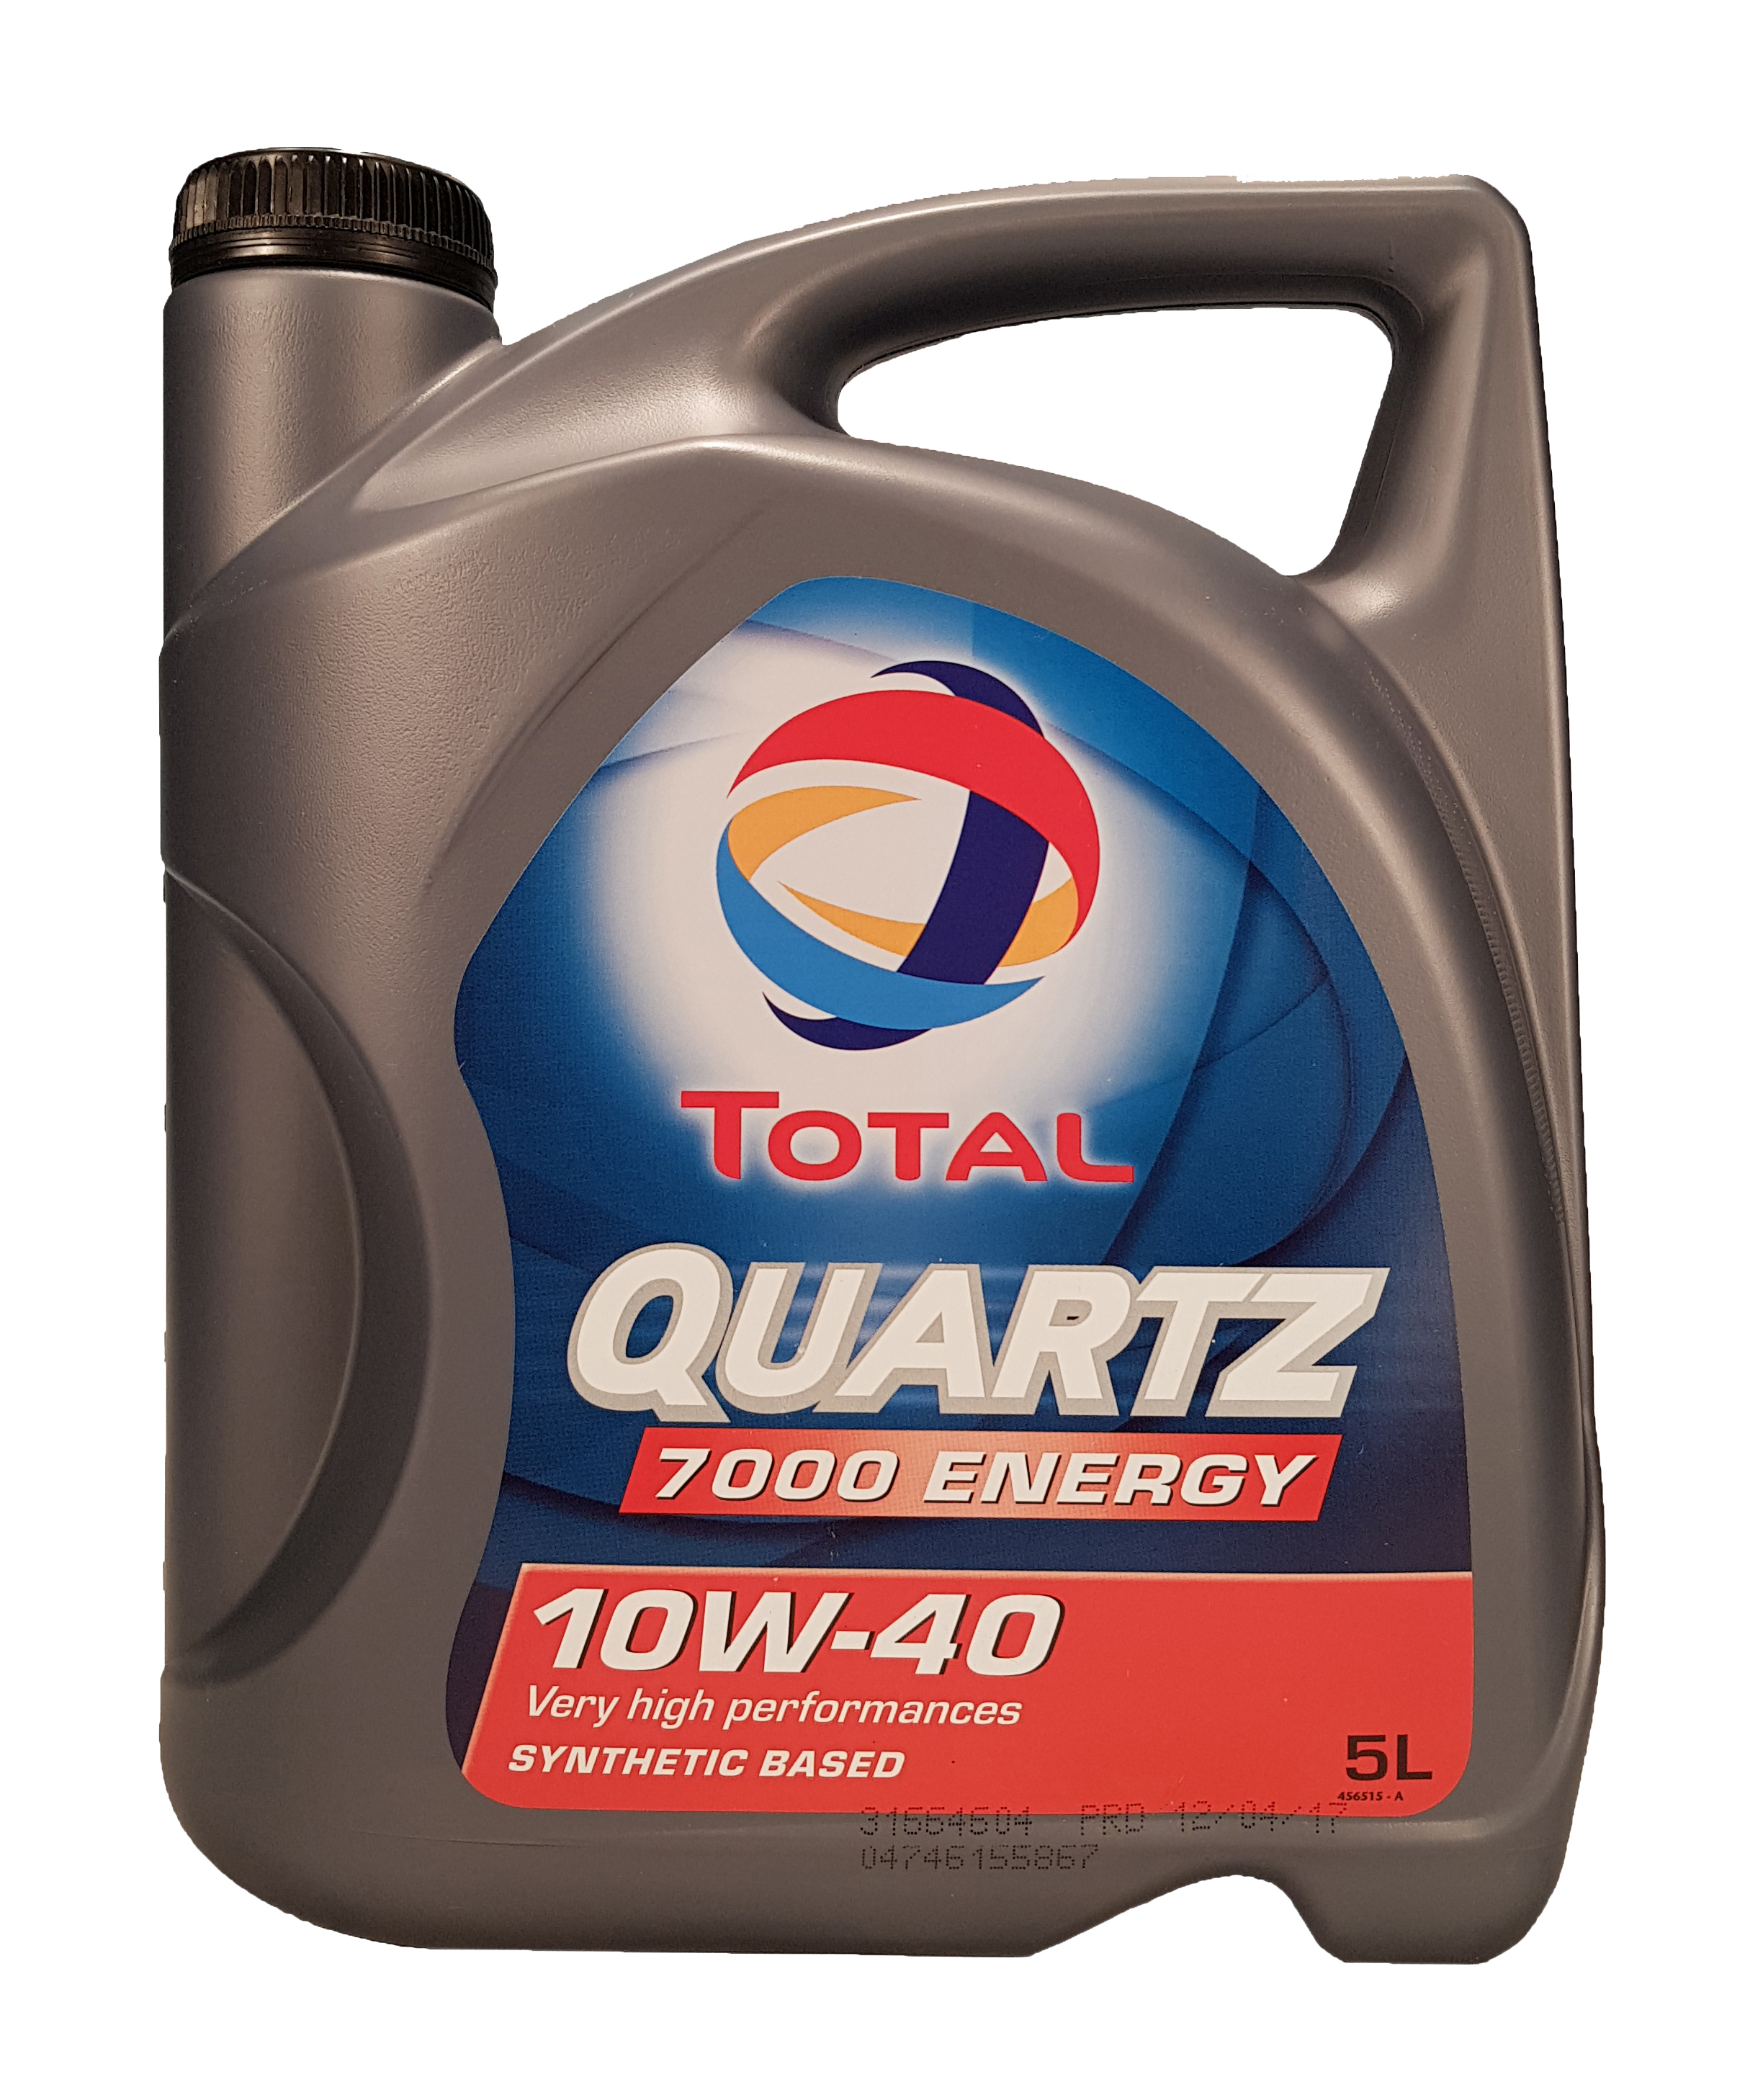 Total Quartz 7000 Energy 10W-40 5 Liter – Bild 1